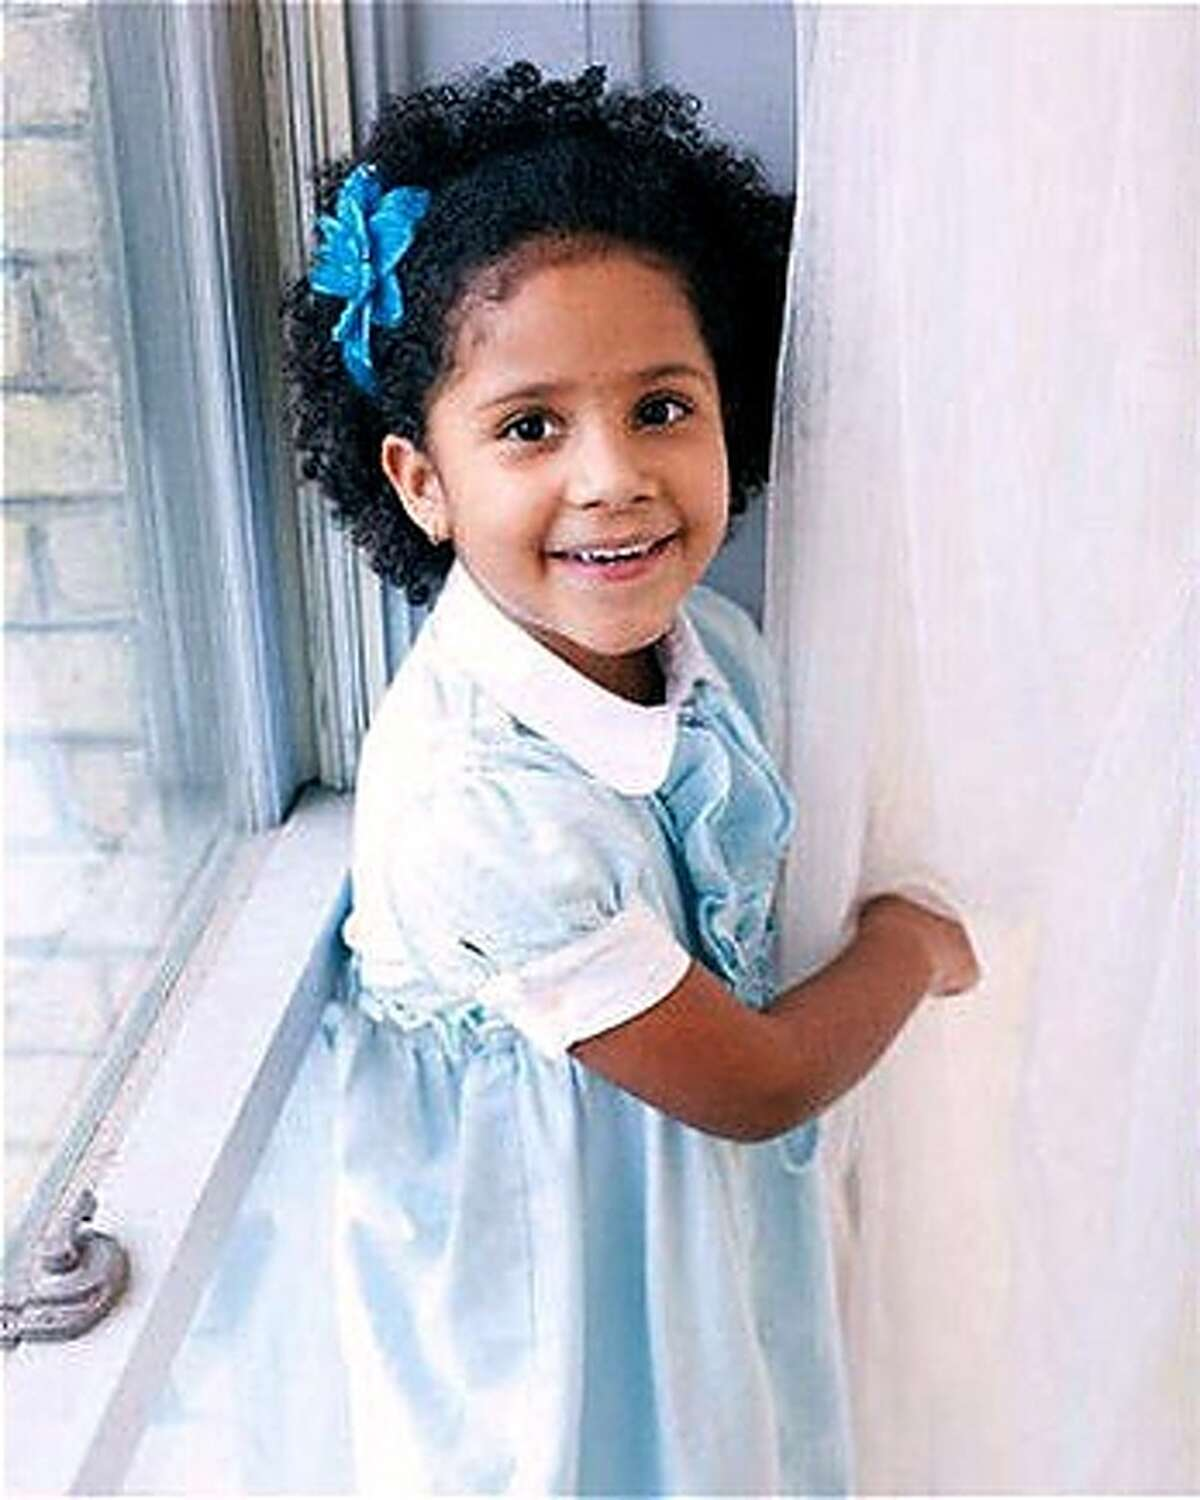 Ana Greene, daughter of jazz musician, Jimmy Greene died in the Sandy Hook Elementary School shooting in Newtown, Conn. on Friday, Dec. 14, 2012.